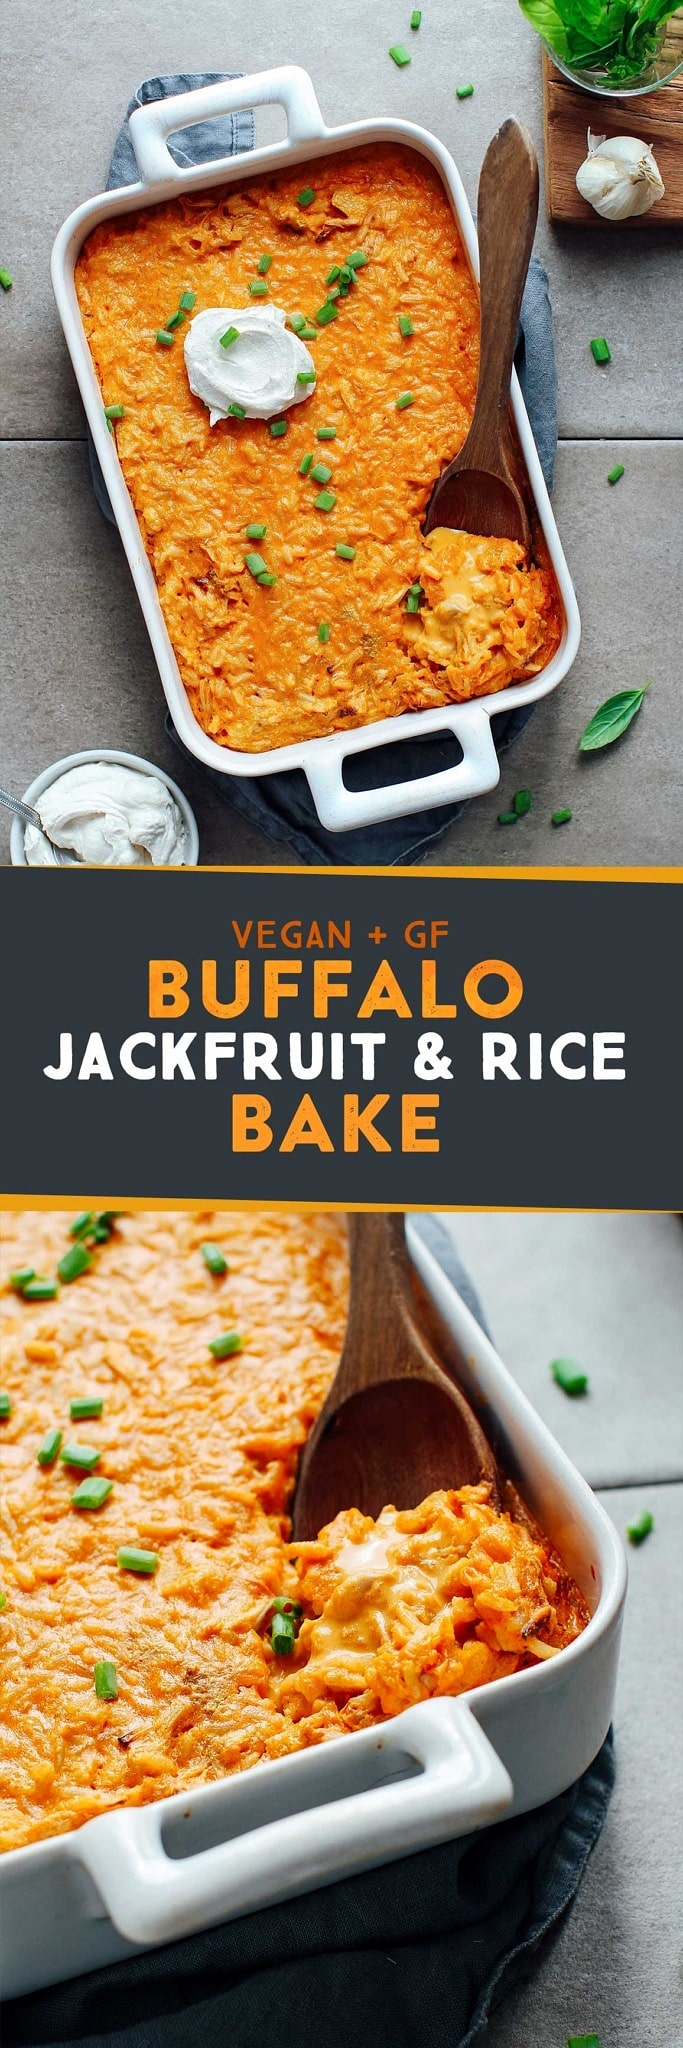 Buffalo Jackfruit & Rice Bake